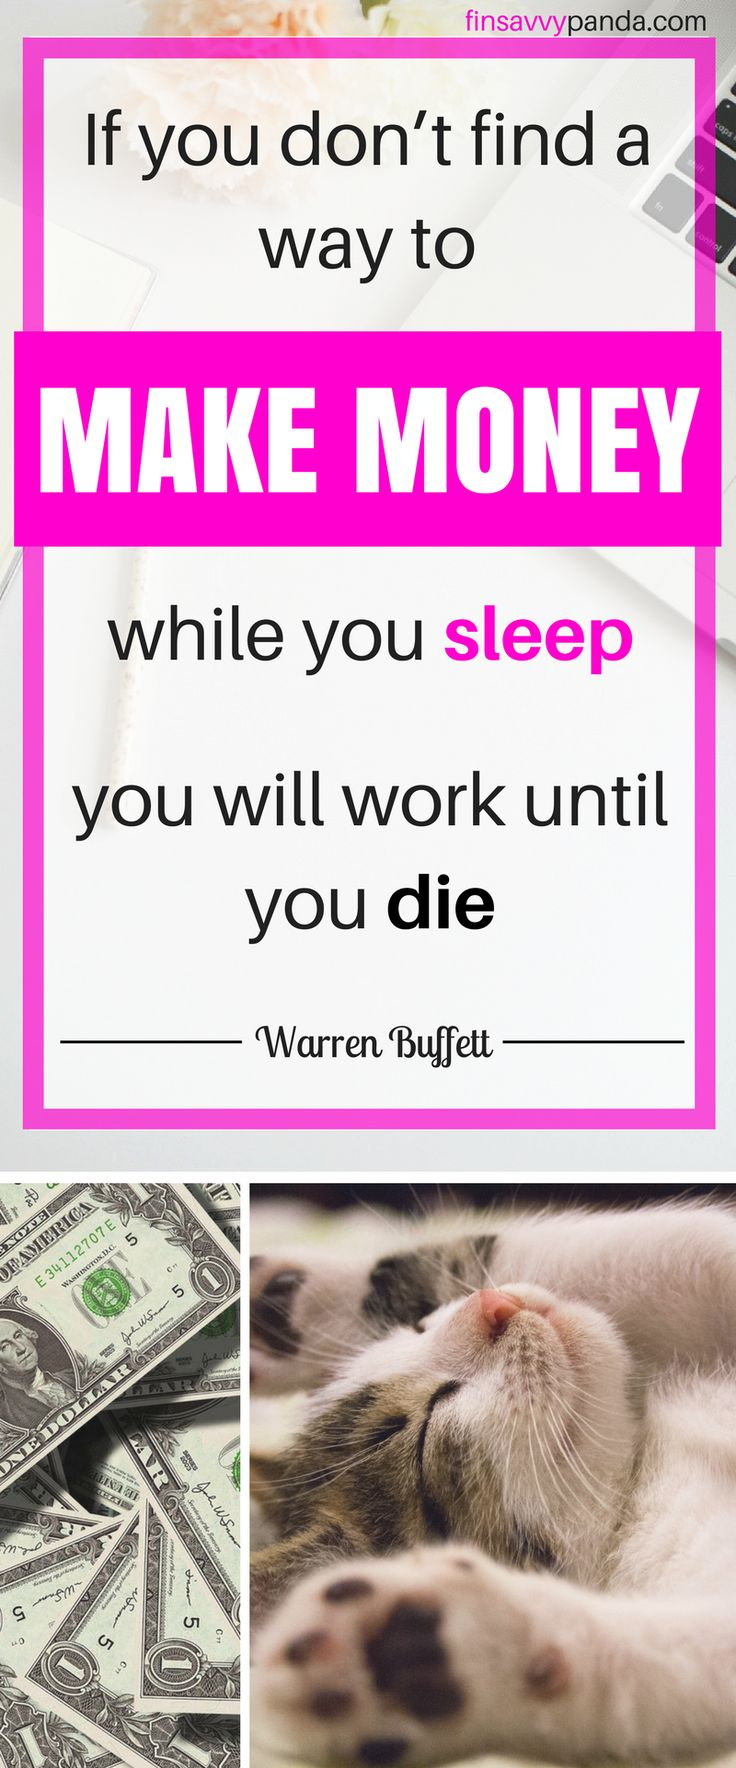 Awesome Warren Buffett quote that will improve your finances and change your life. Read further for inspiration! #moneytips #warrenbuffett #lifelessons #moneylessons #selfdevelopment #passiveincome #makemoremoney #makemoney #motivational #inspirational #earnmoney